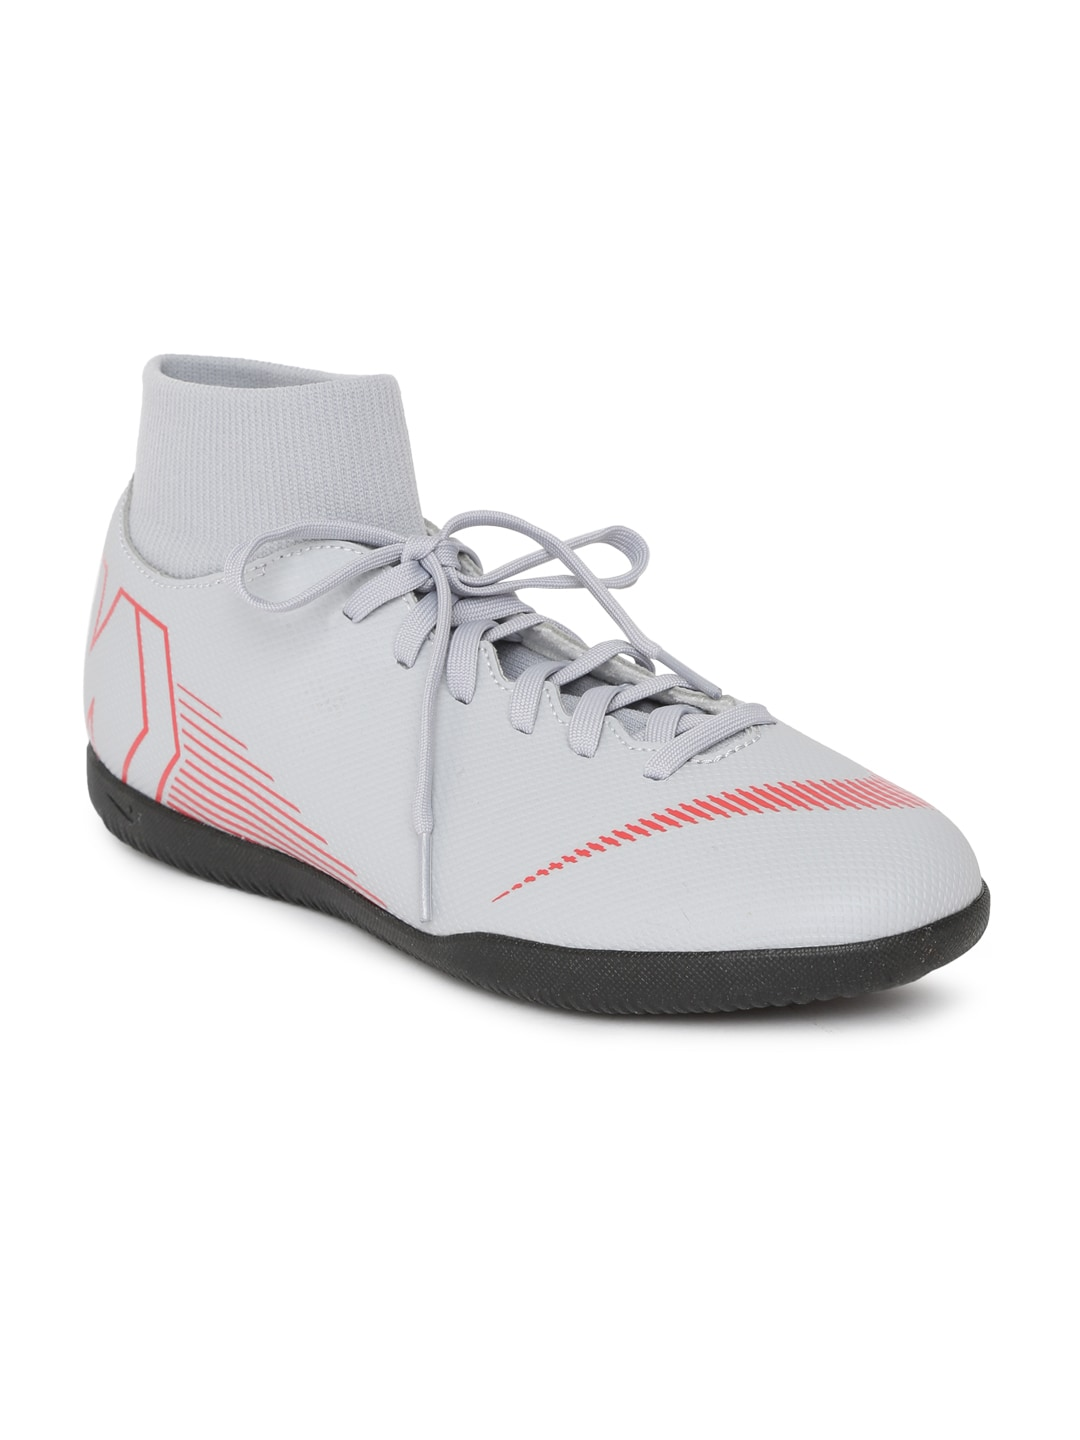 High Top Shoes - Buy High Top Shoes online in India e3c4577ed